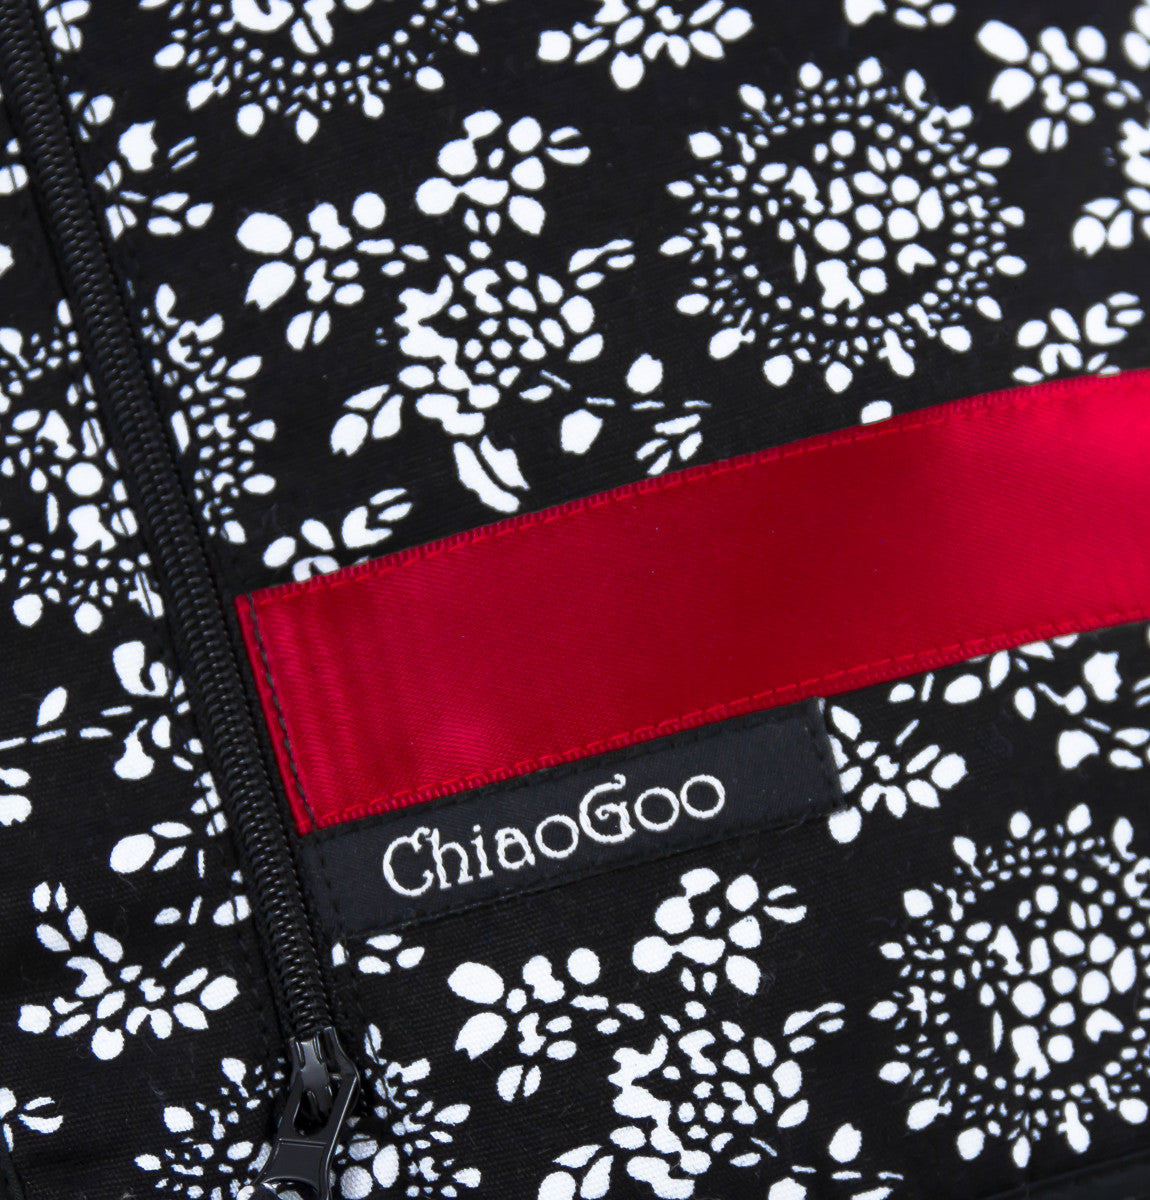 "ChiaoGoo TWIST Red Lace Interchangeables Needles 5"" - Large"